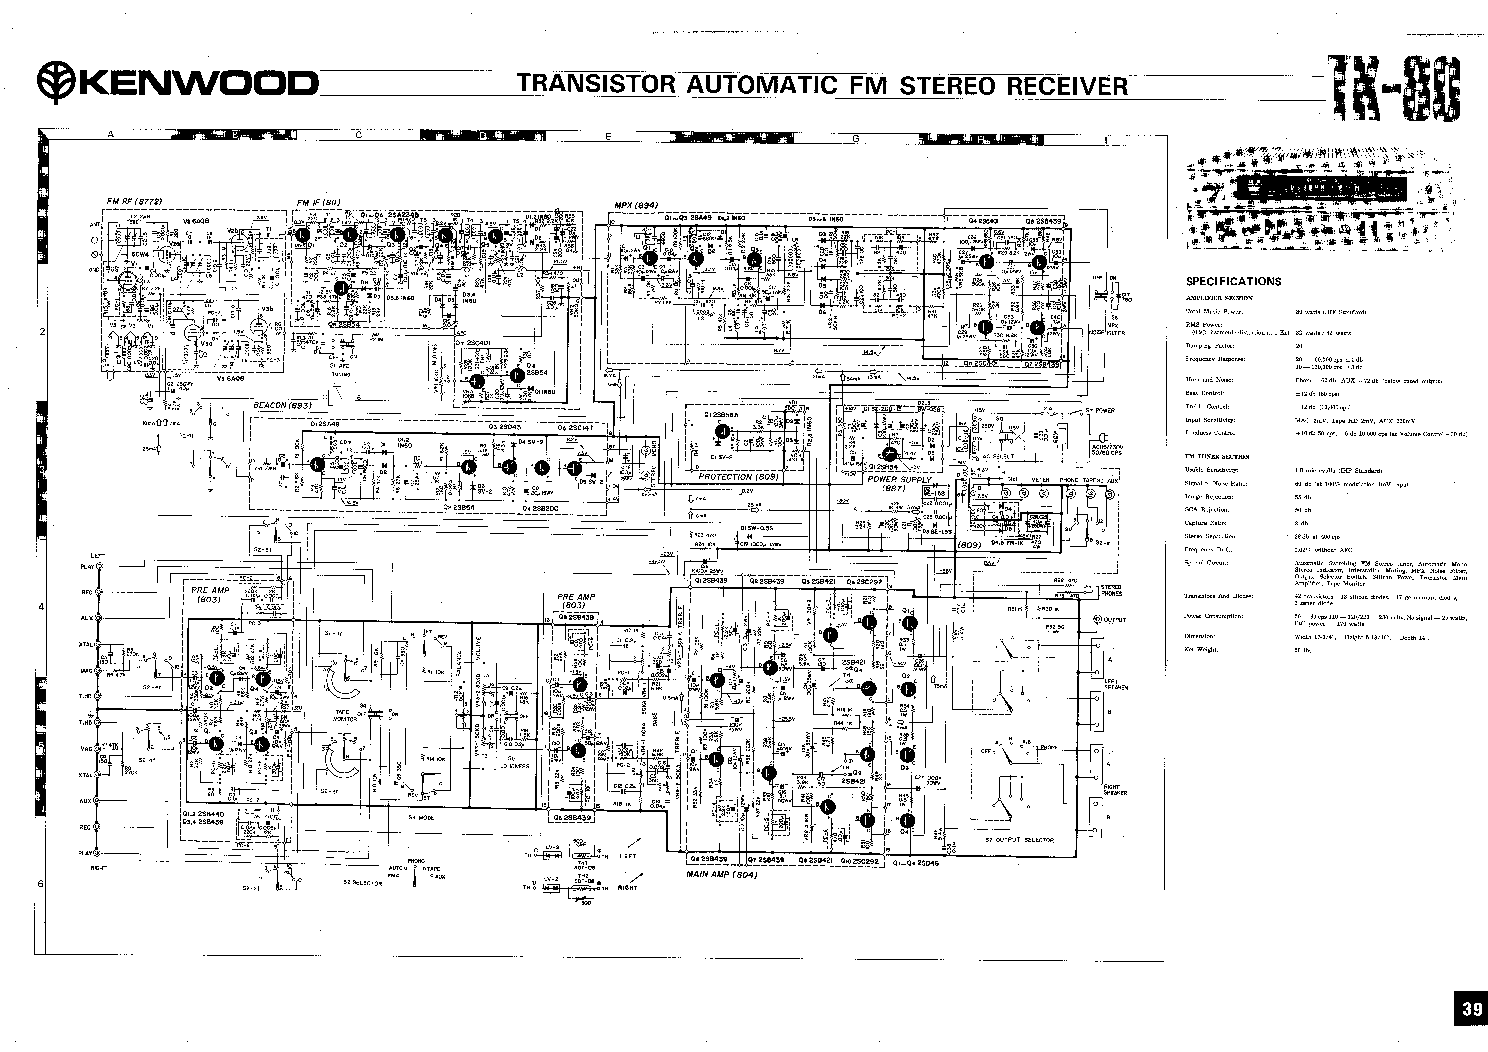 KENWOOD TK-80 SCHEMATIC service manual (1st page)